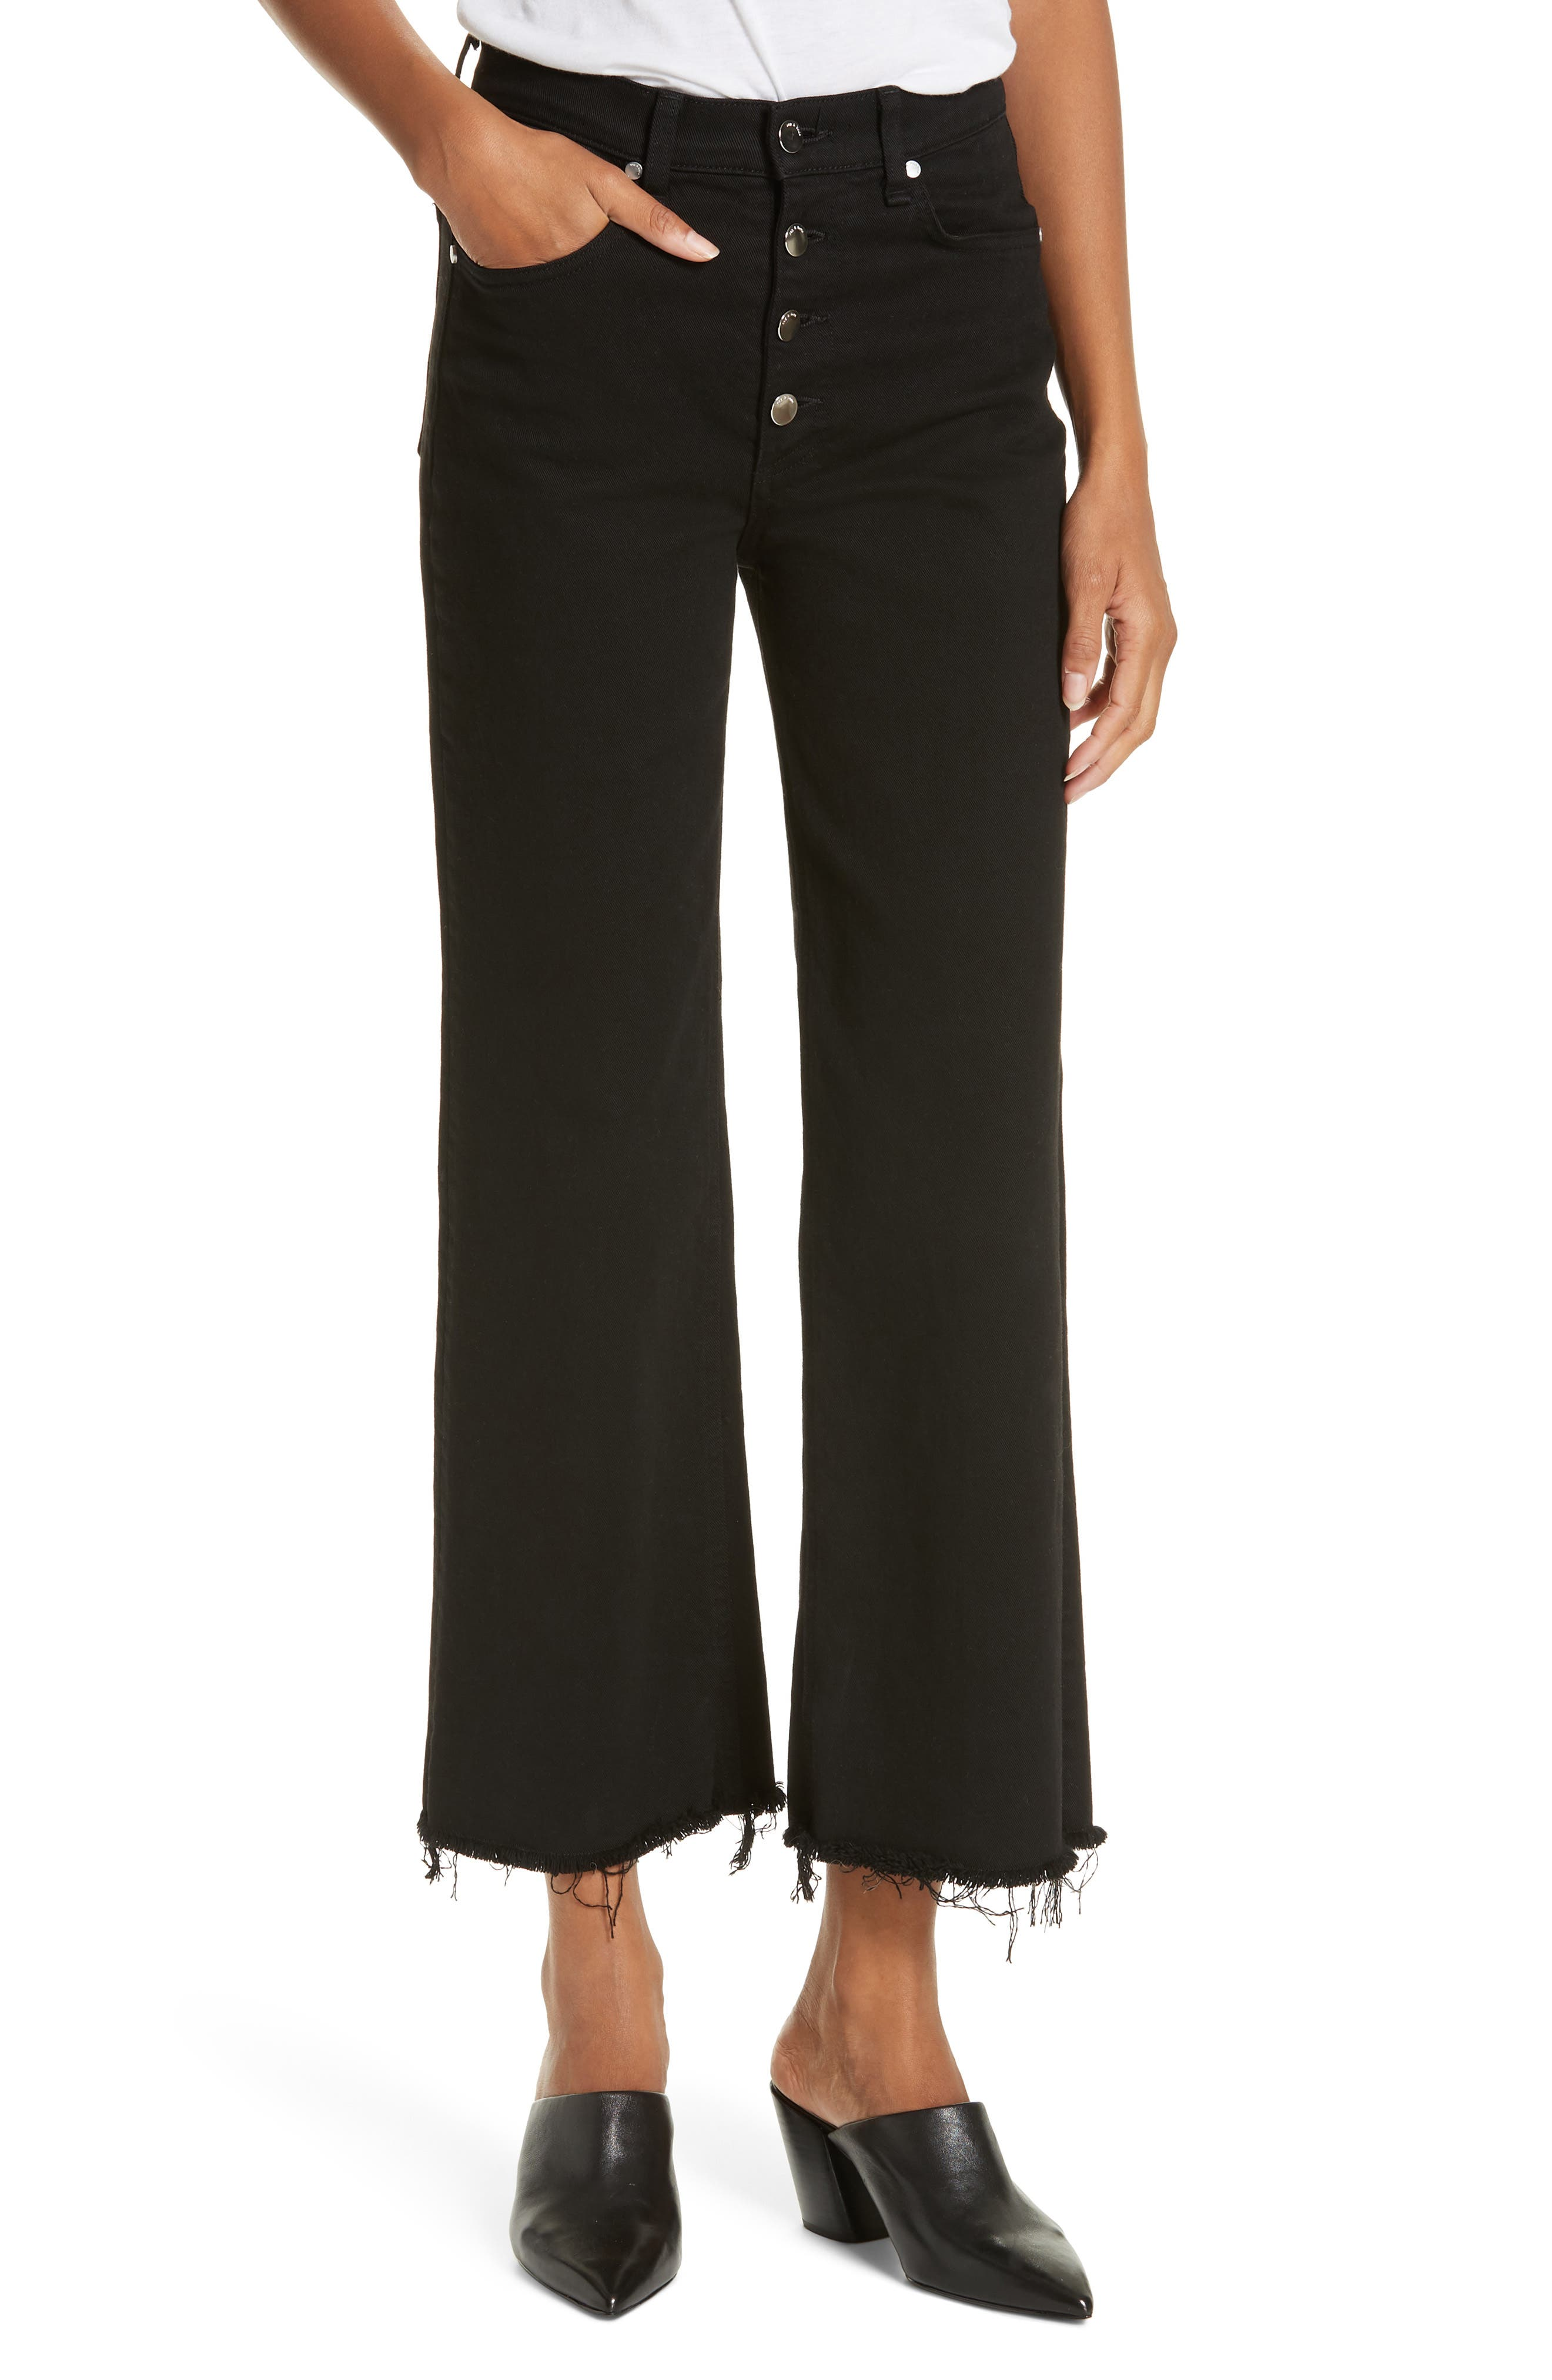 RAG & BONE Justine High Waist Cutoff Wide Leg Jeans, Main, color, BLACK